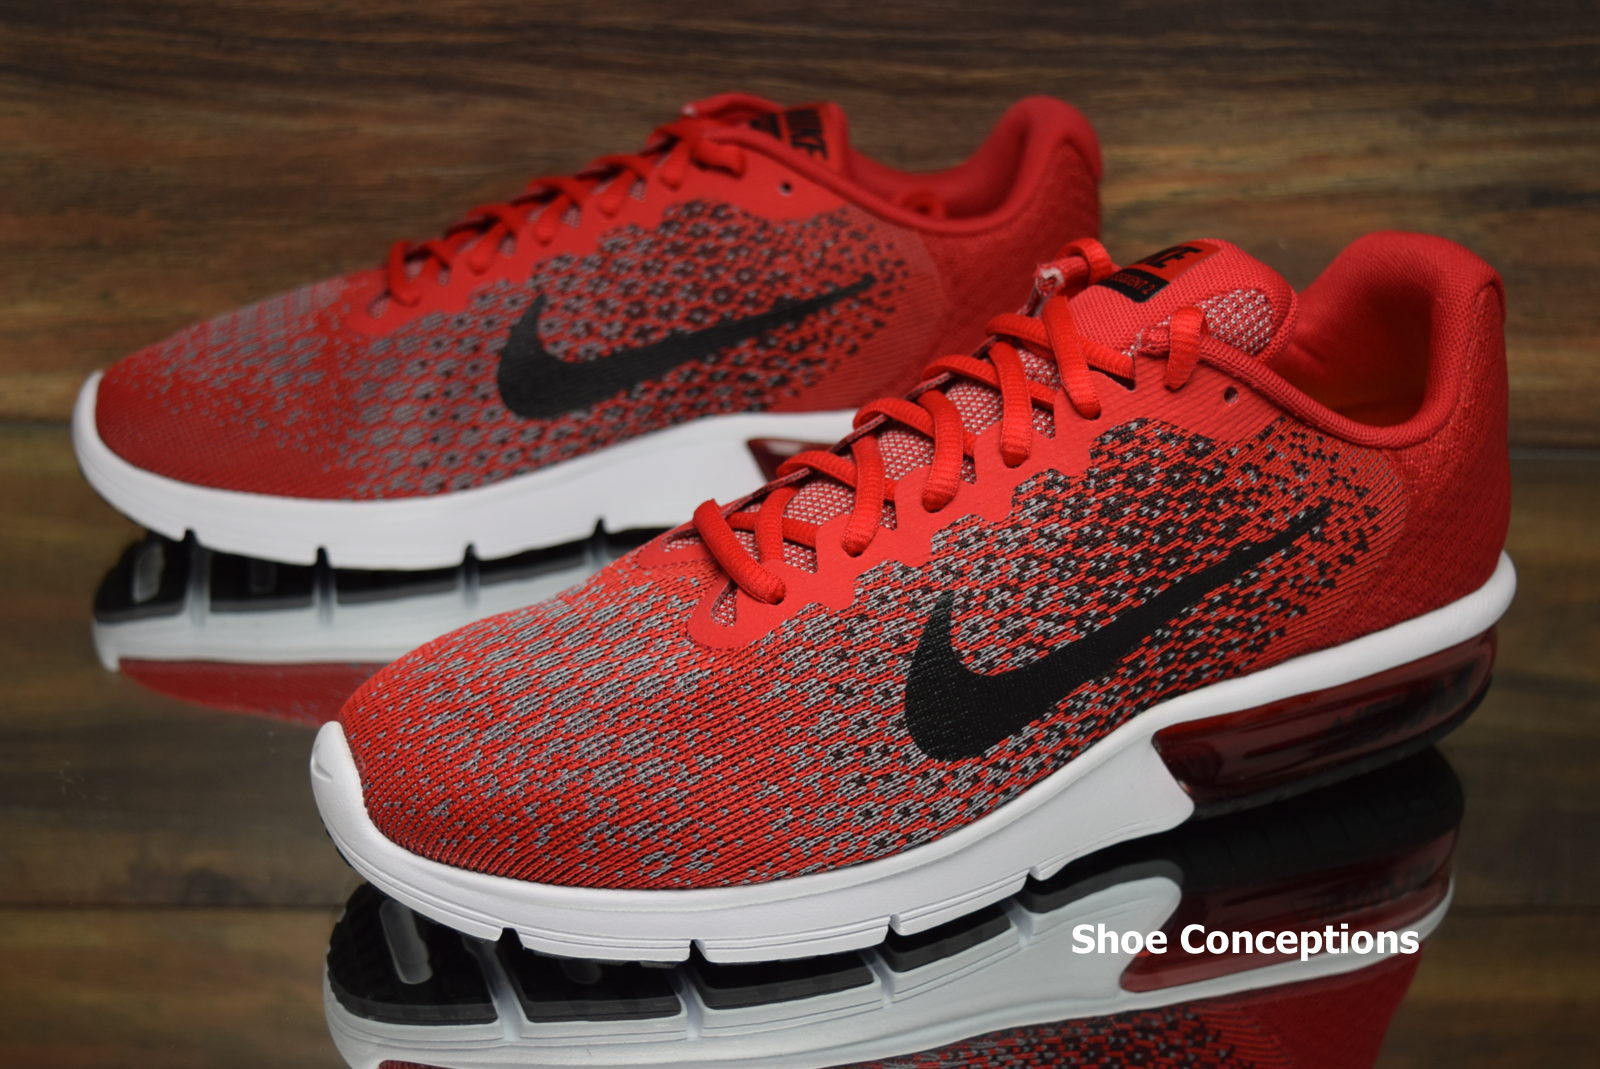 3783e4c58e3 Nike Air Max Sequent Sequent Sequent 2 Red Black 852461-600 Running Shoes  Men s ...